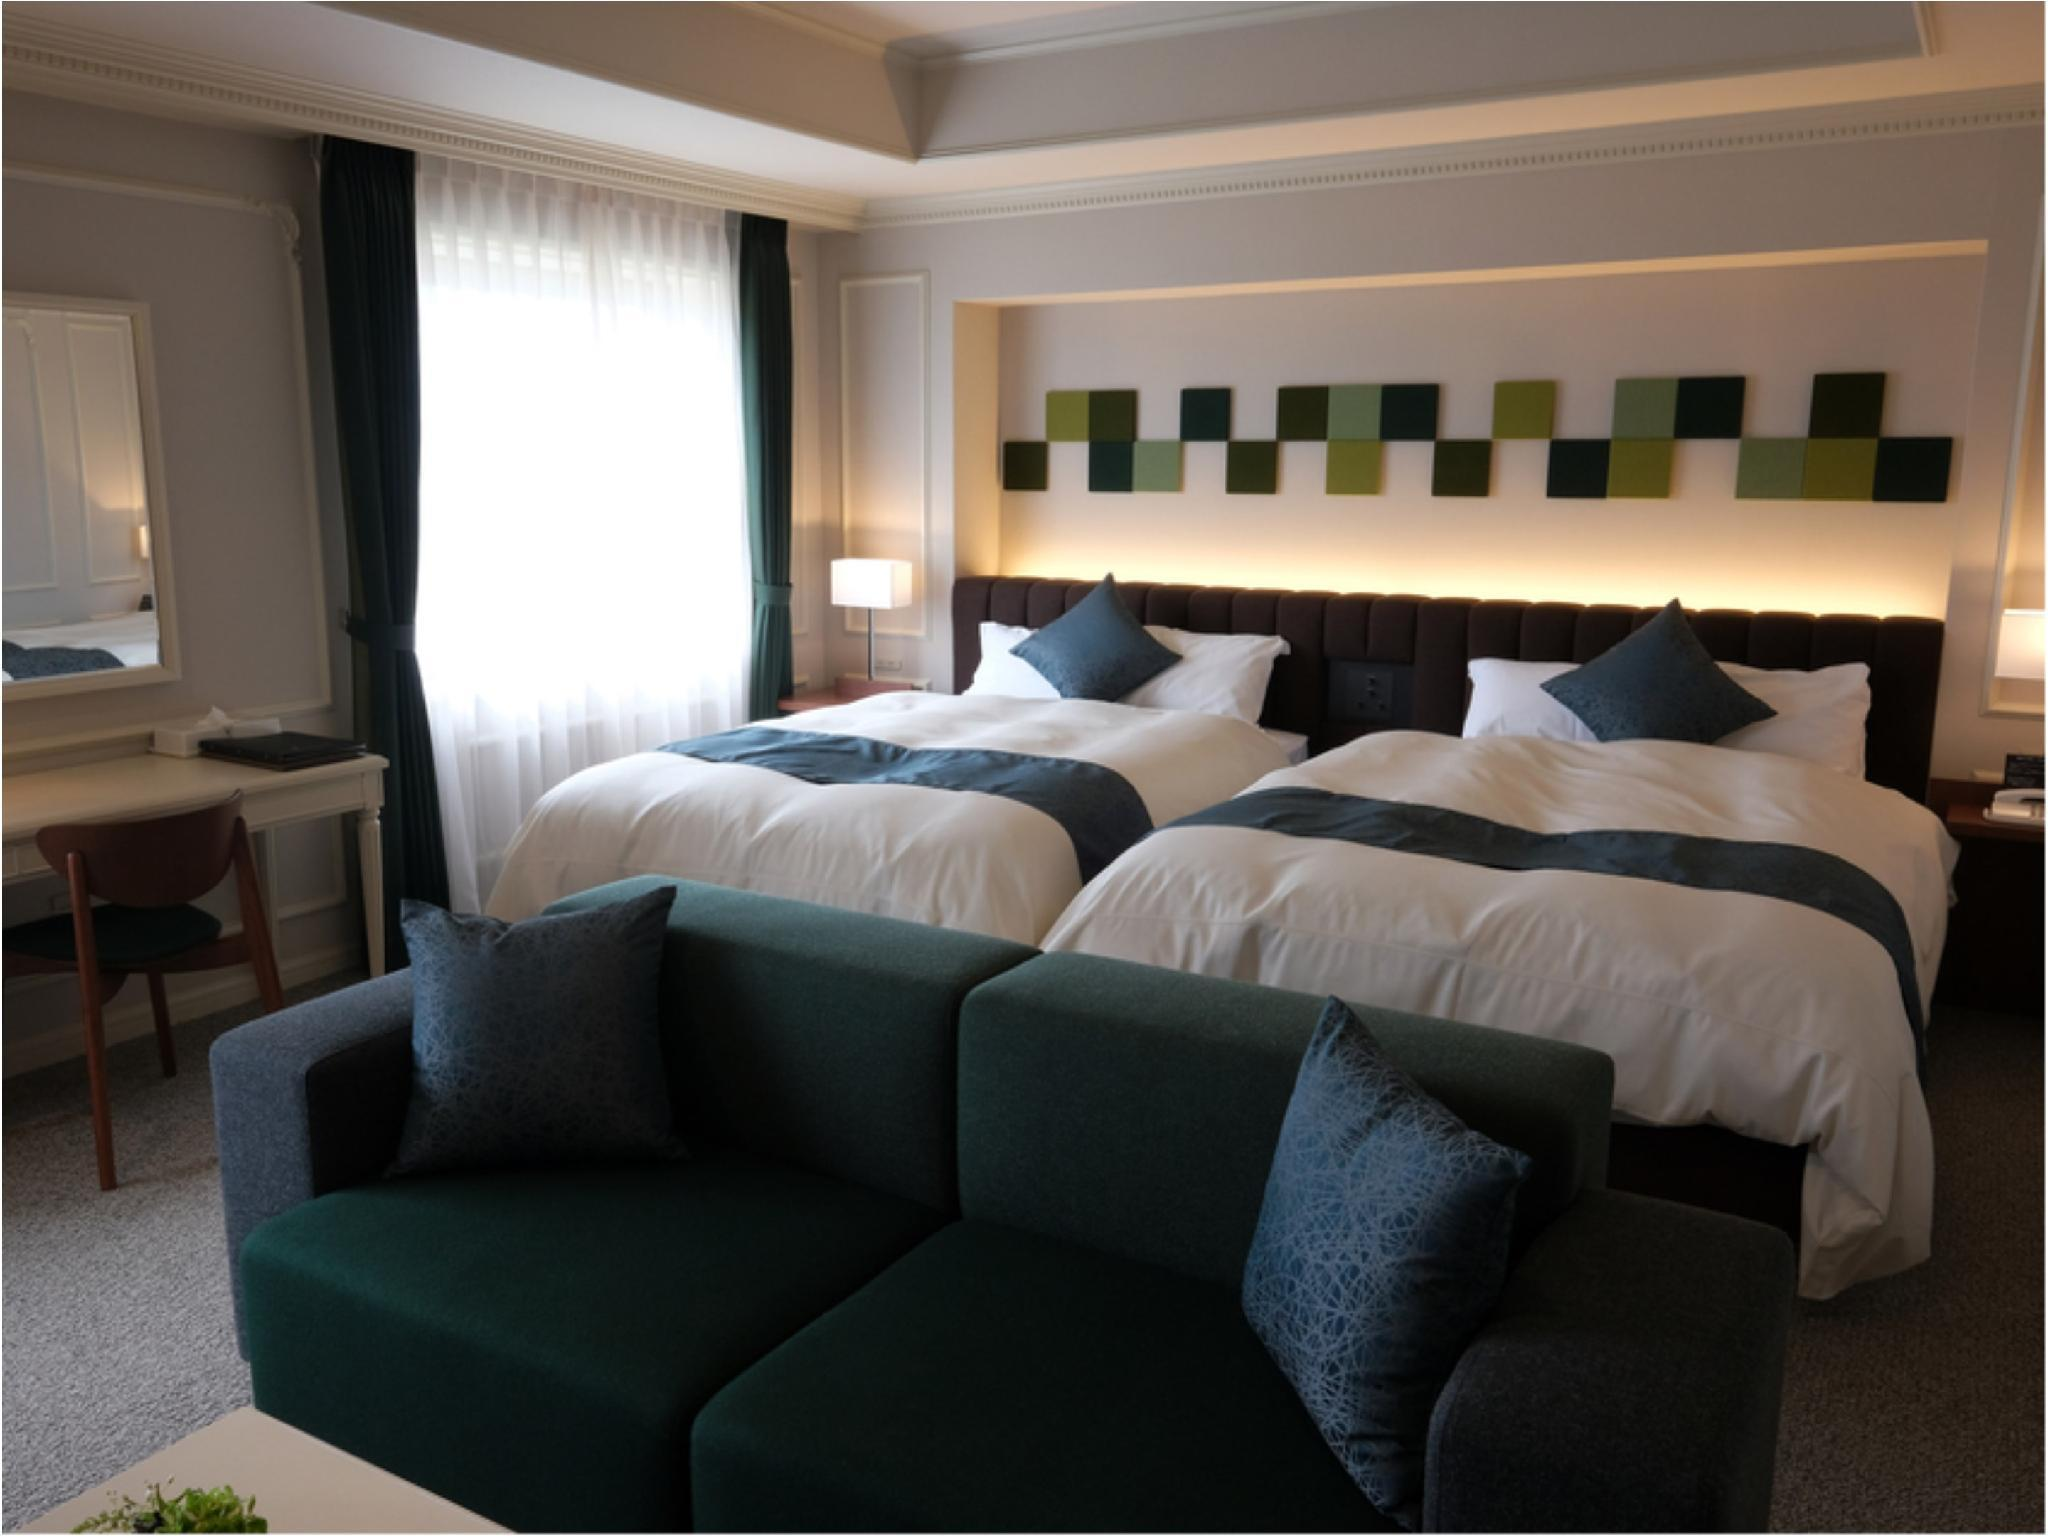 트윈룸 (Natural Modern Twin Room or Premium Room)